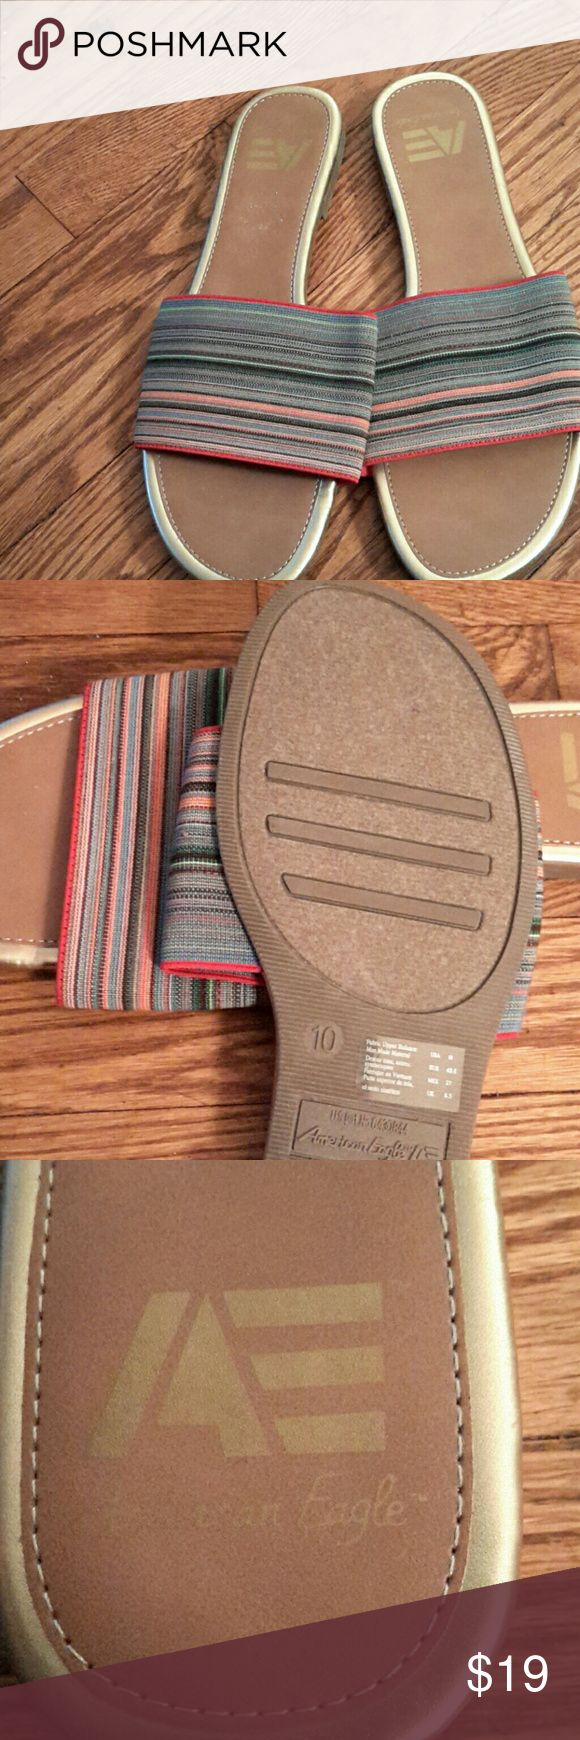 Flip Flops Brand New Multi Color Flip Flops American Eagle by Payless Shoes Sandals